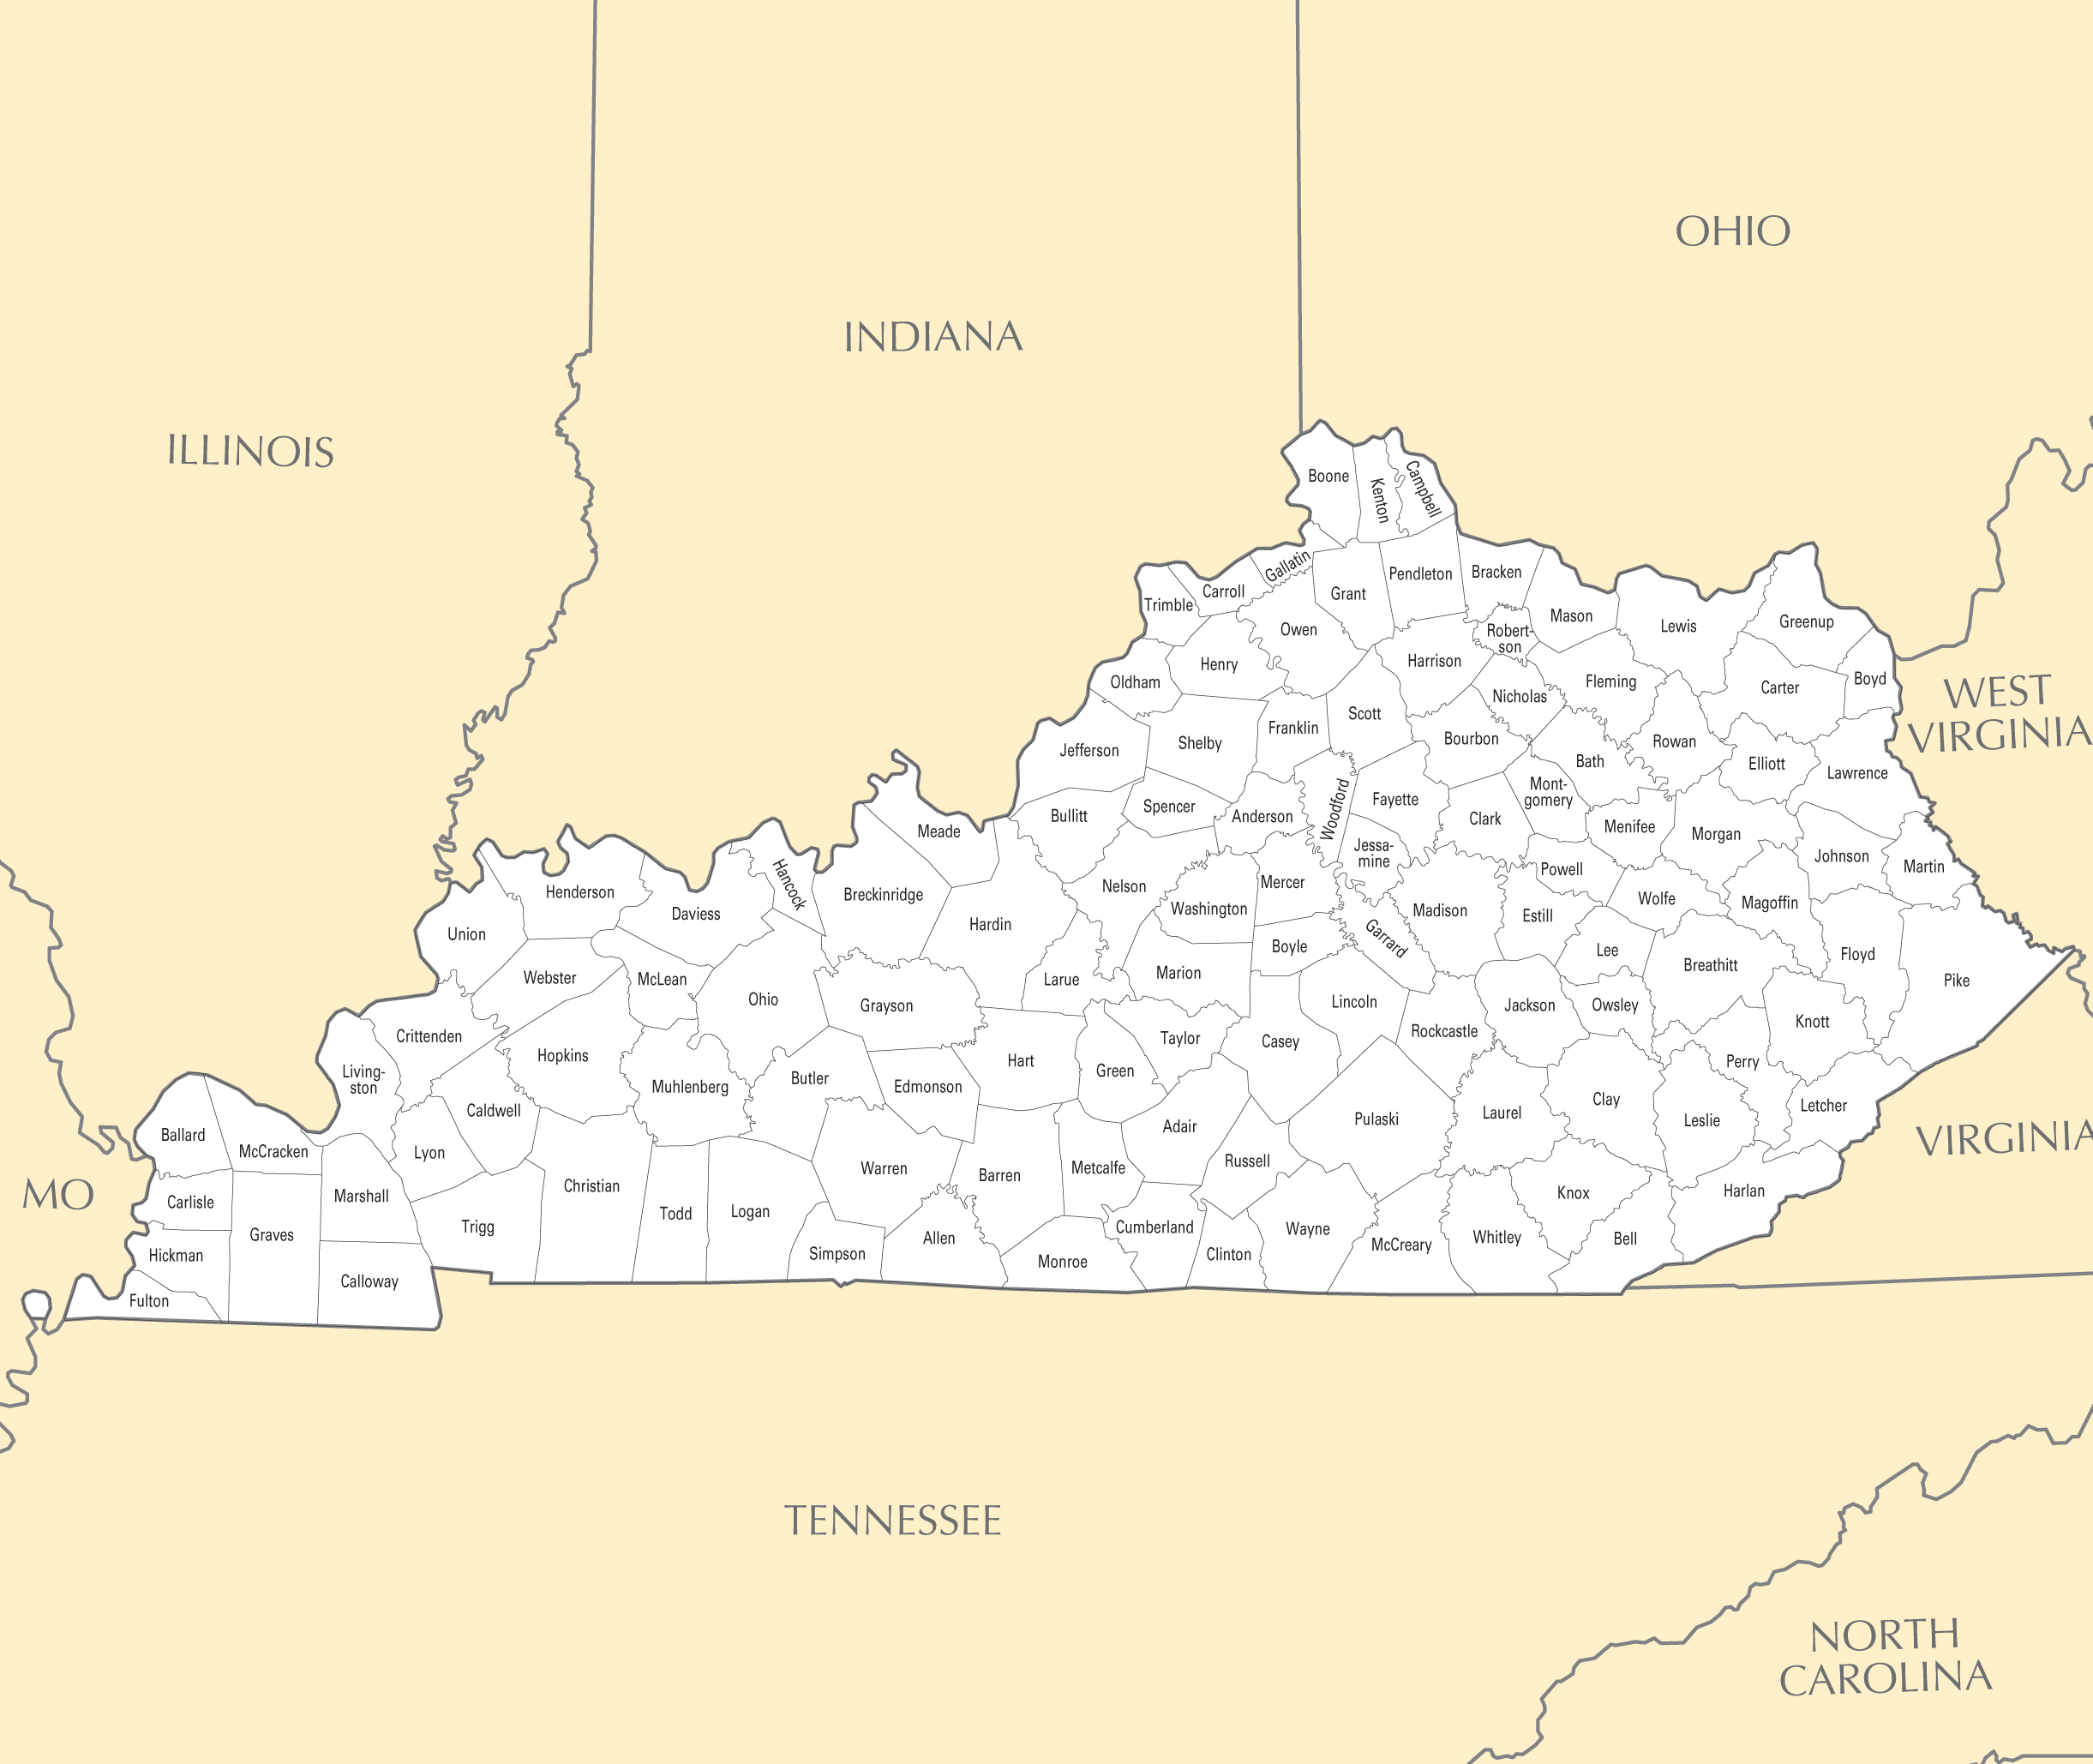 Kentucky County Map Images